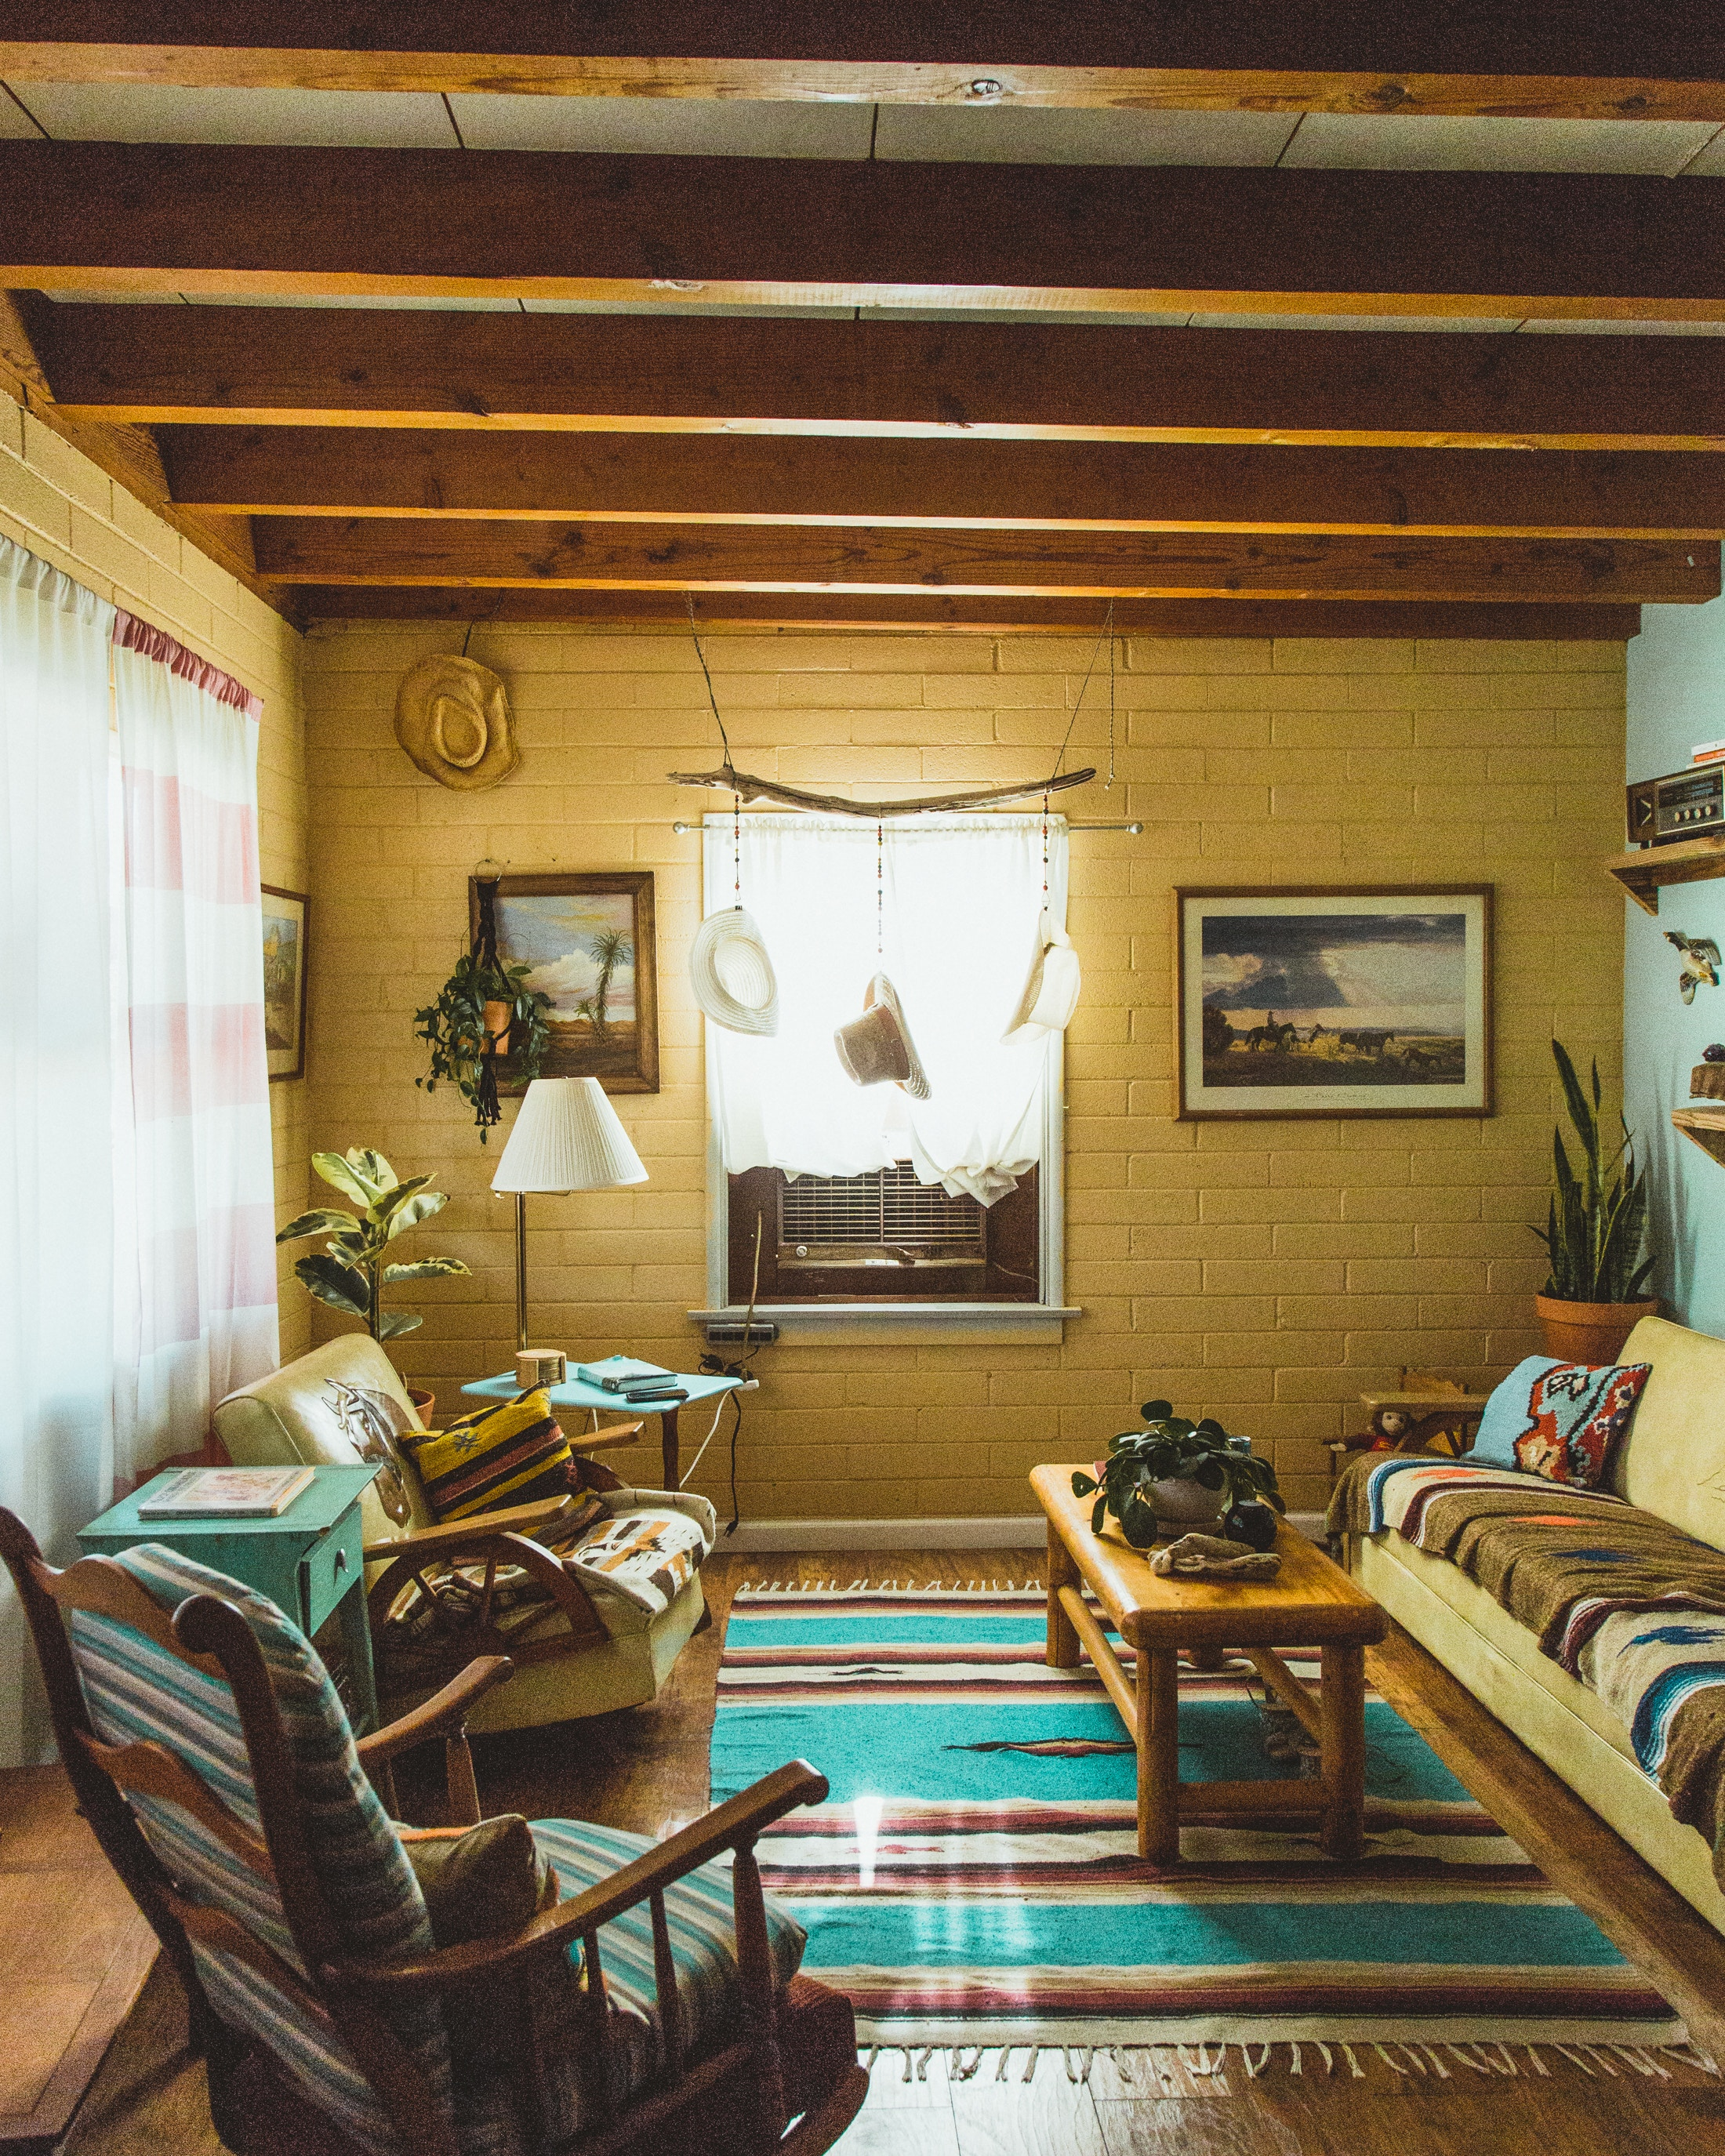 You've gotta love a beach boho / desert vibe! This space has stuck to one style and does it well.